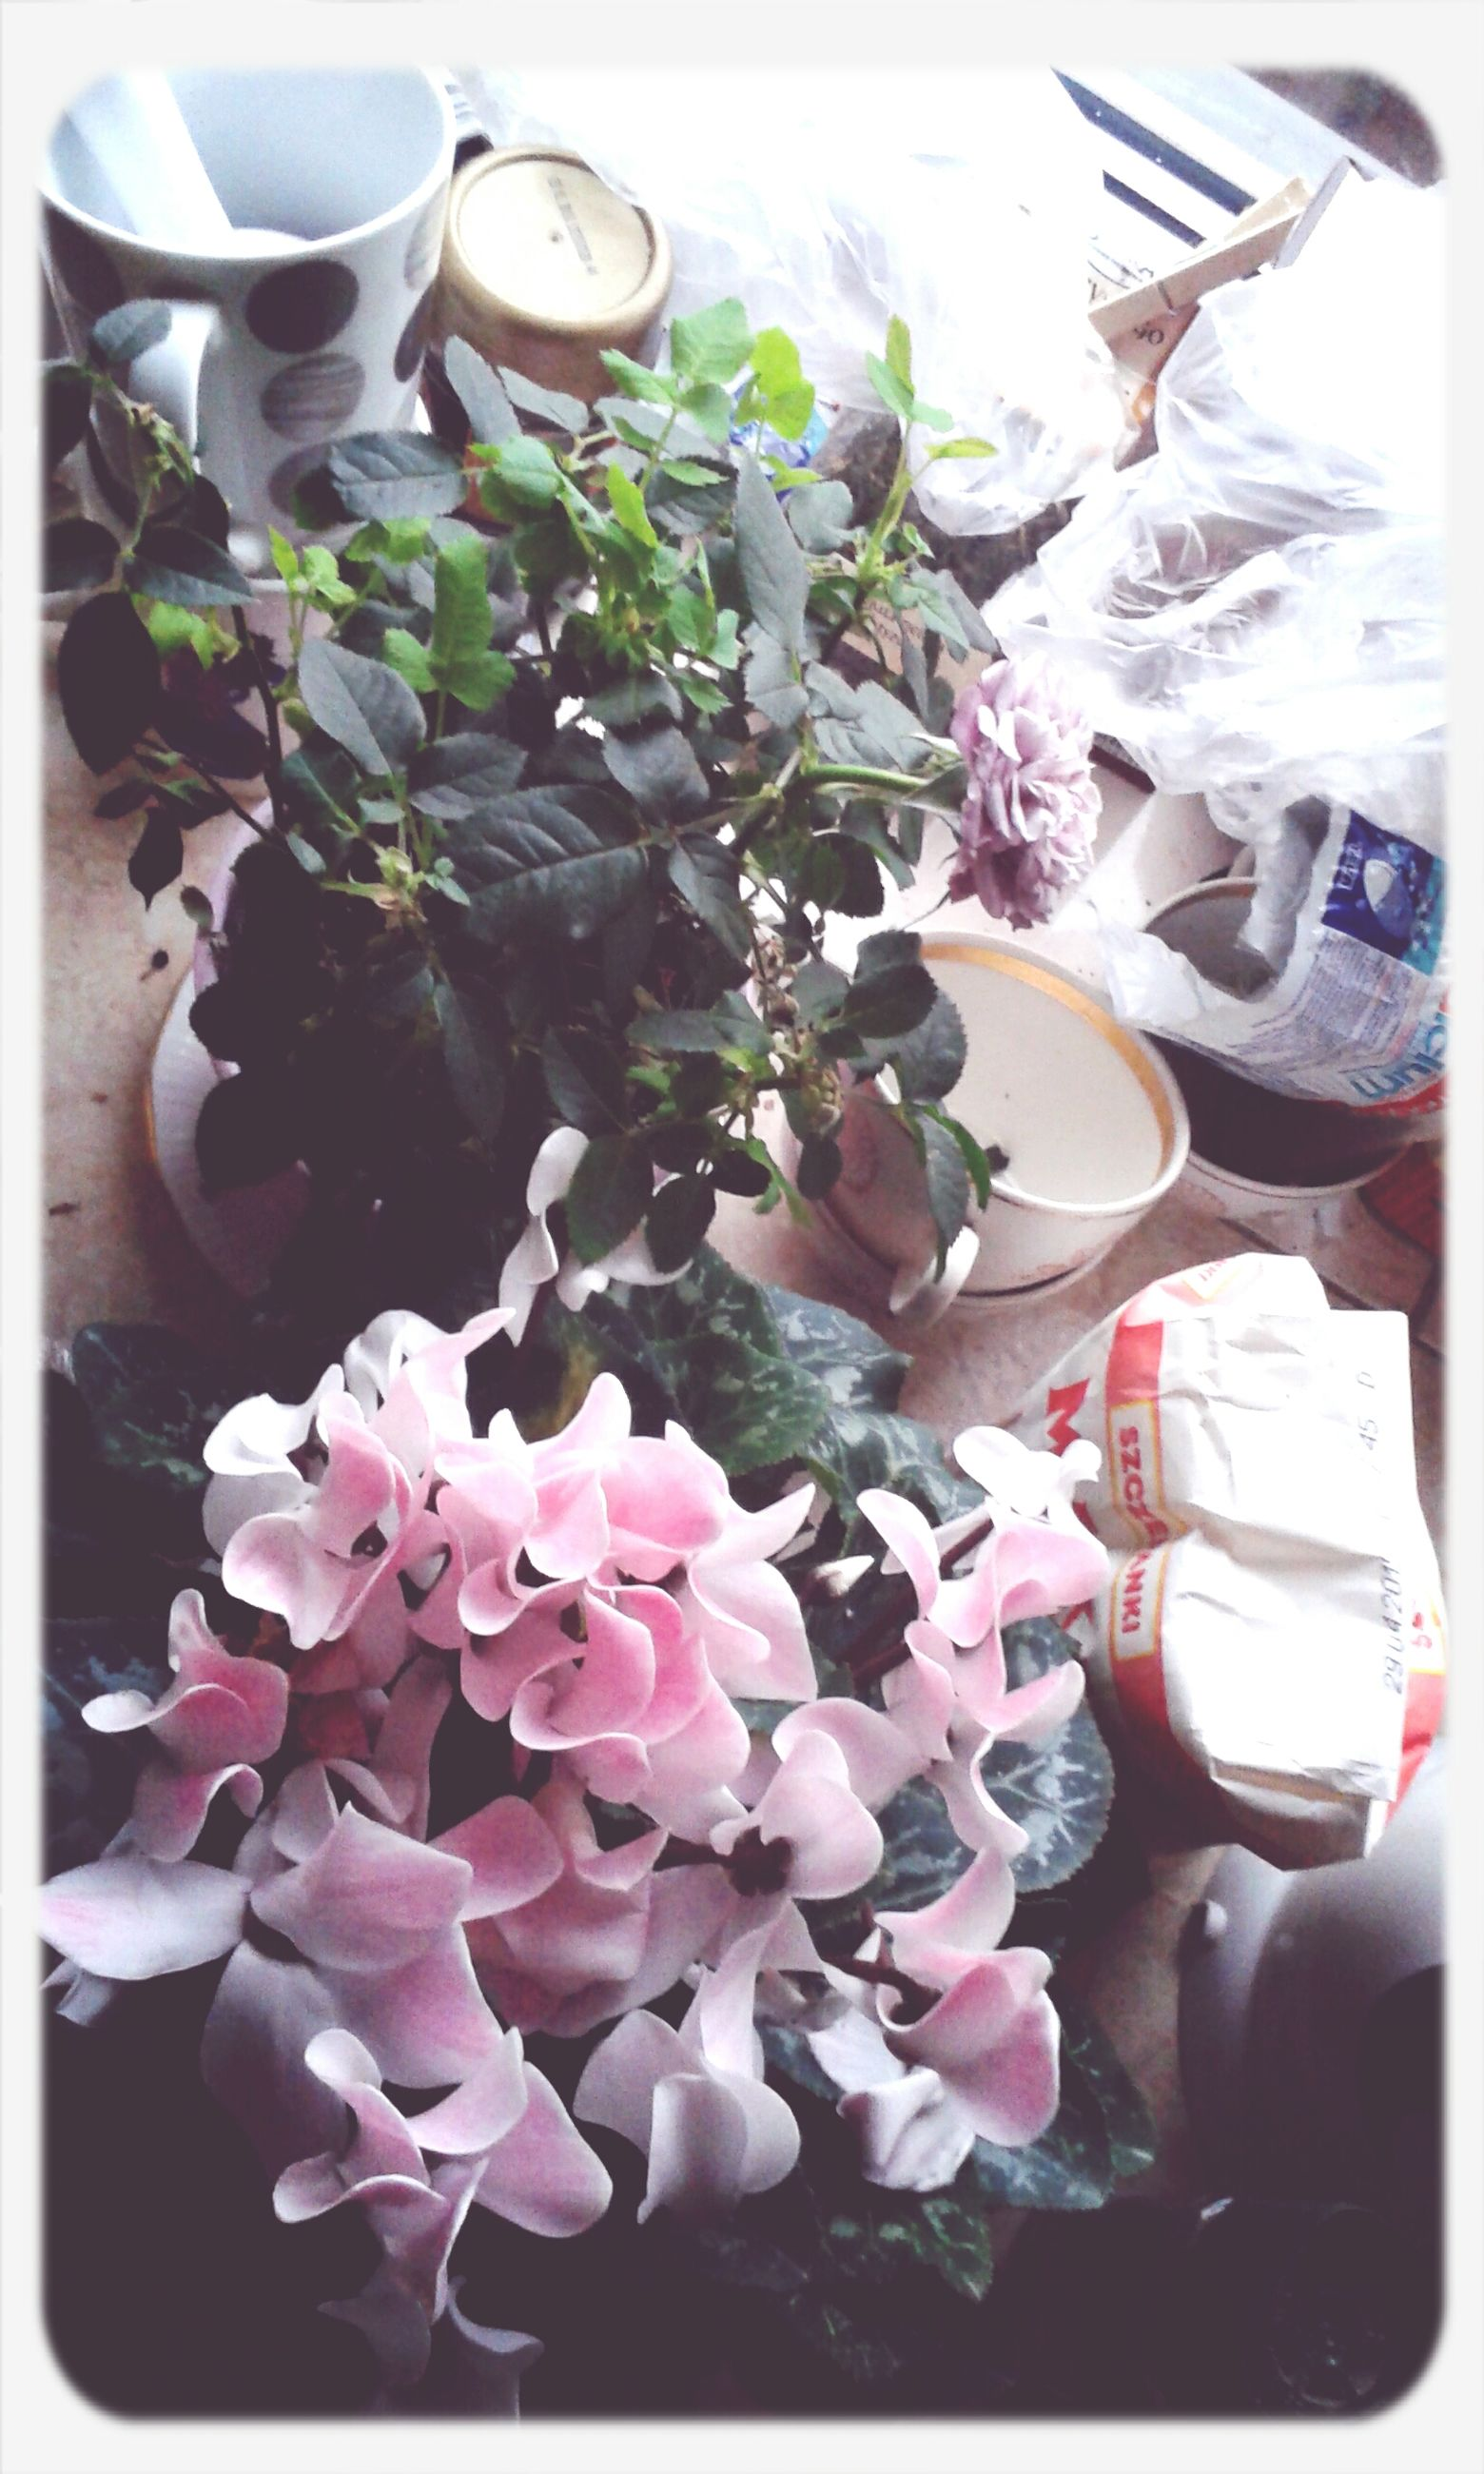 flower, indoors, freshness, transfer print, vase, table, petal, auto post production filter, fragility, bouquet, still life, potted plant, high angle view, close-up, variation, bunch of flowers, flower arrangement, flower head, plant, growth